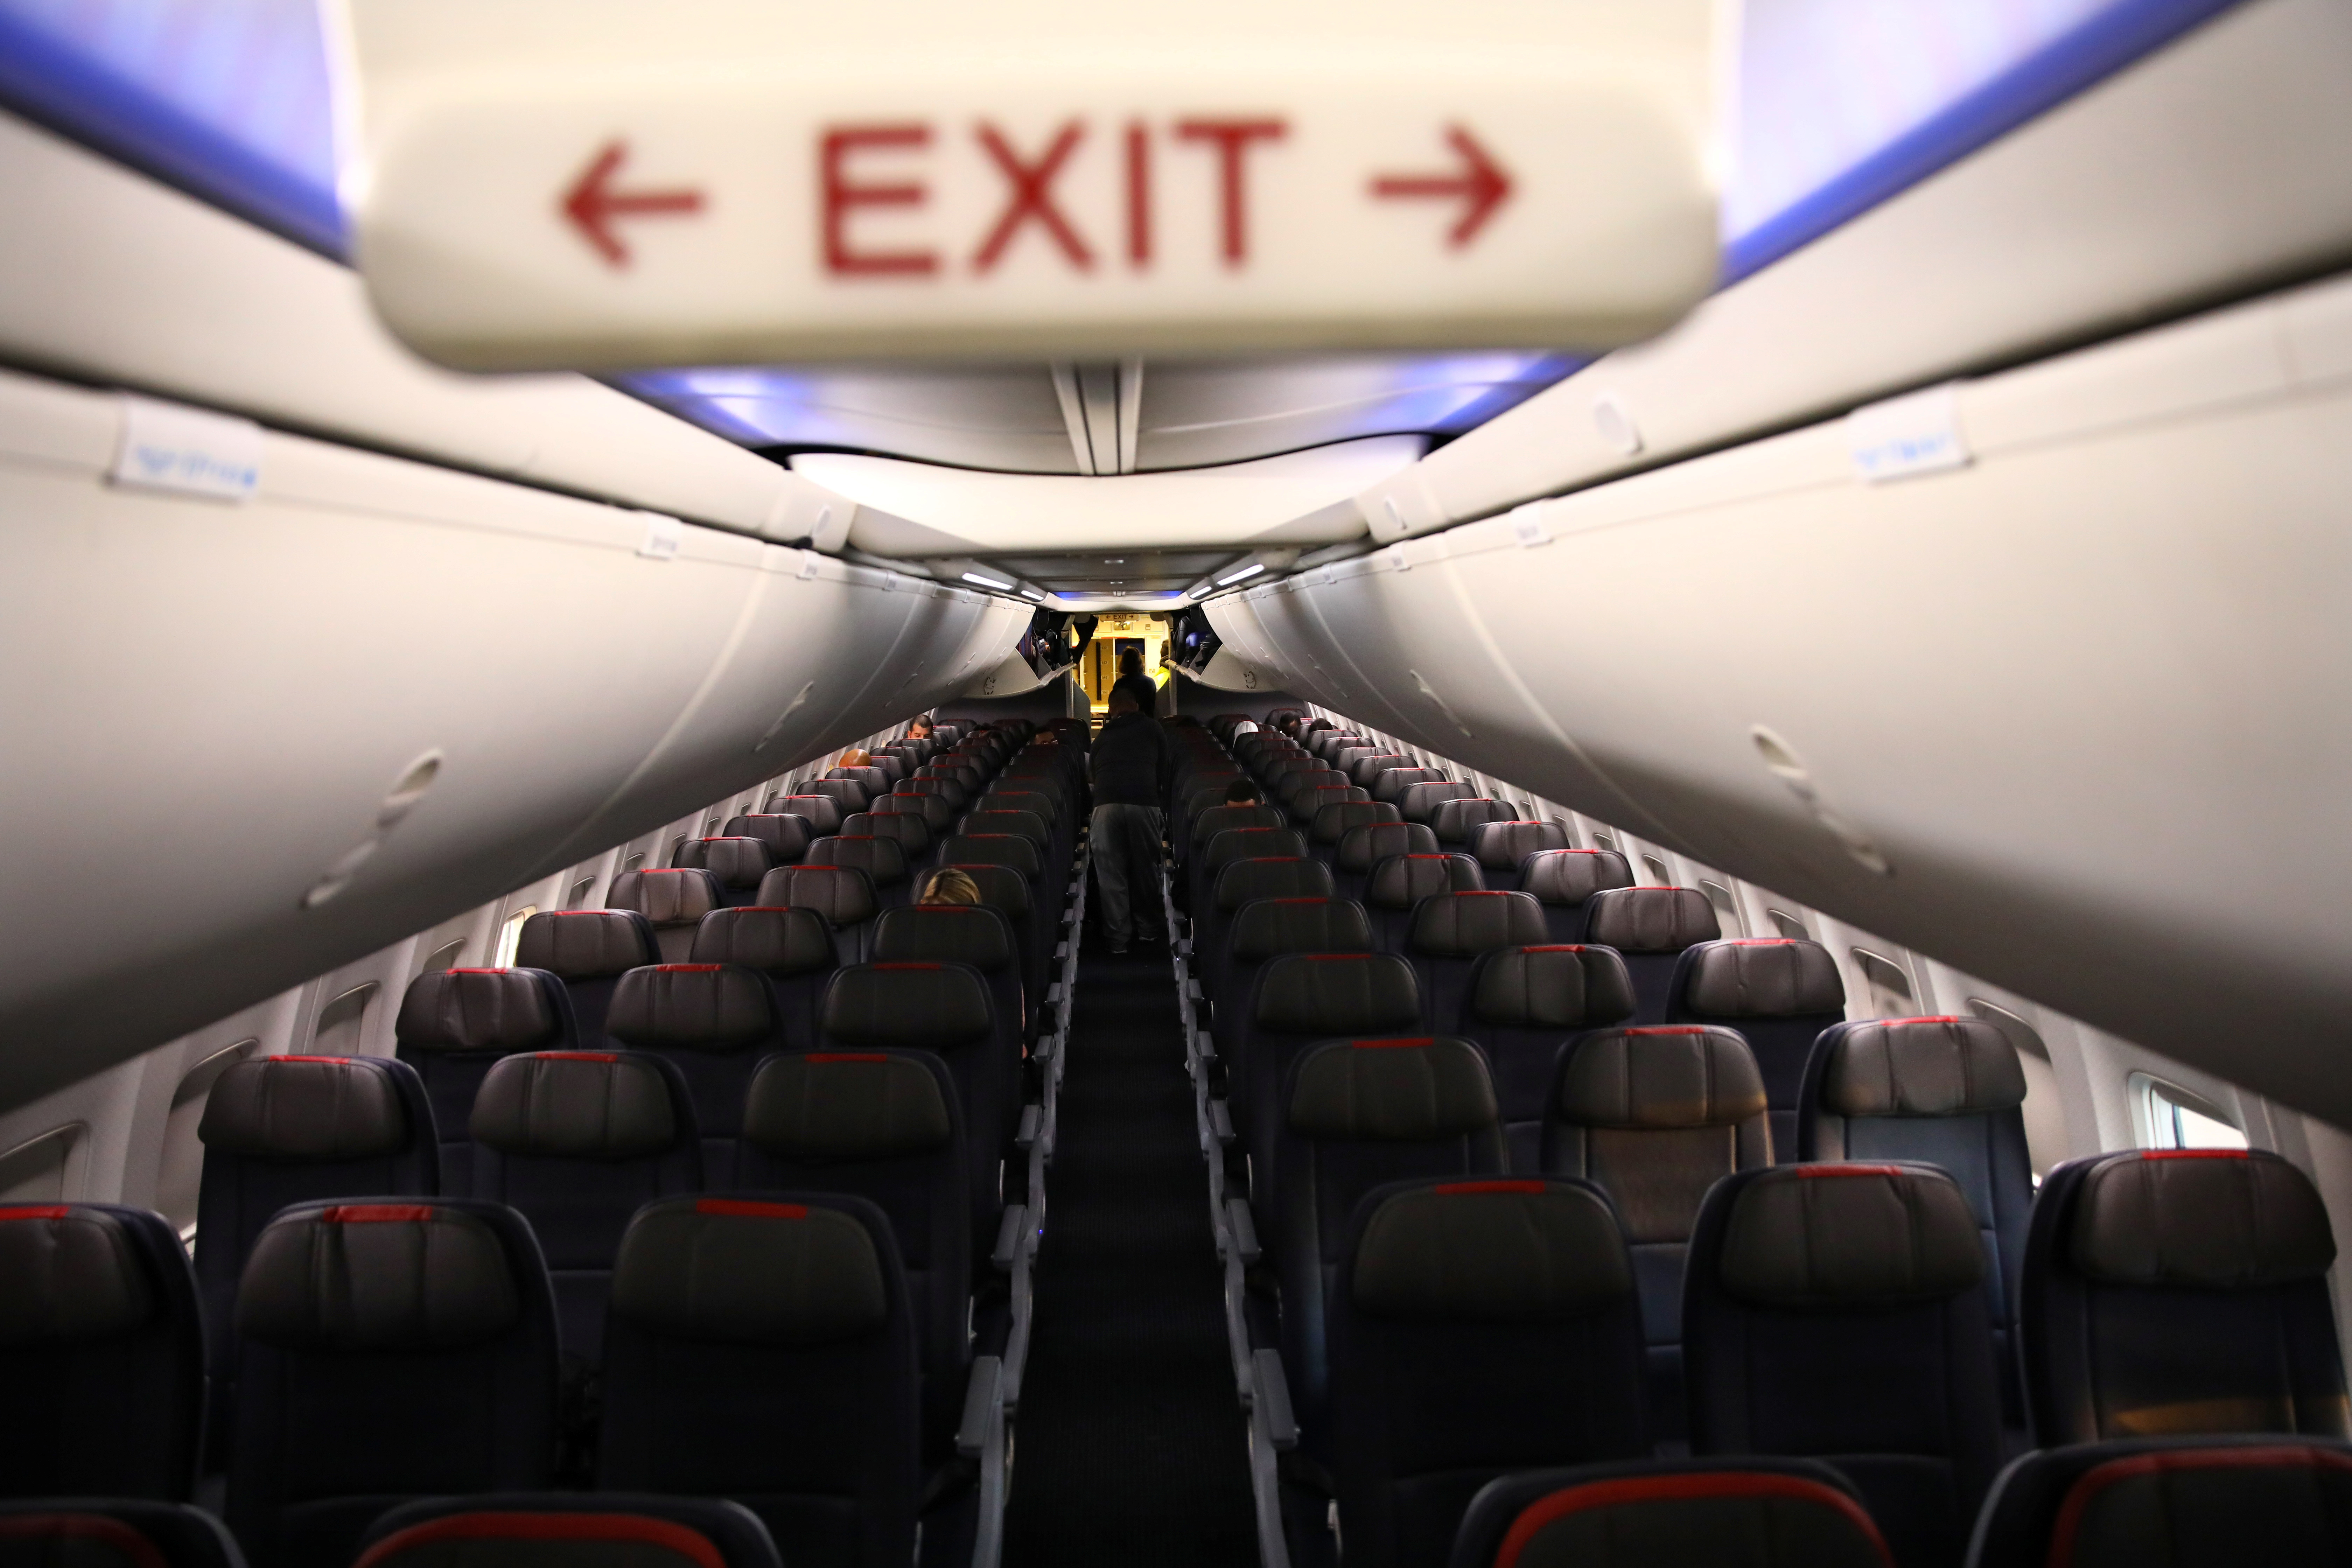 Rows of empty seats of an American Airline flight are seen, as coronavirus disease (COVID-19) disruption continues across the global industry, during a flight between Washington D.C. and Miami, in Washington, U.S., March 18, 2020. REUTERS/Carlos Barria